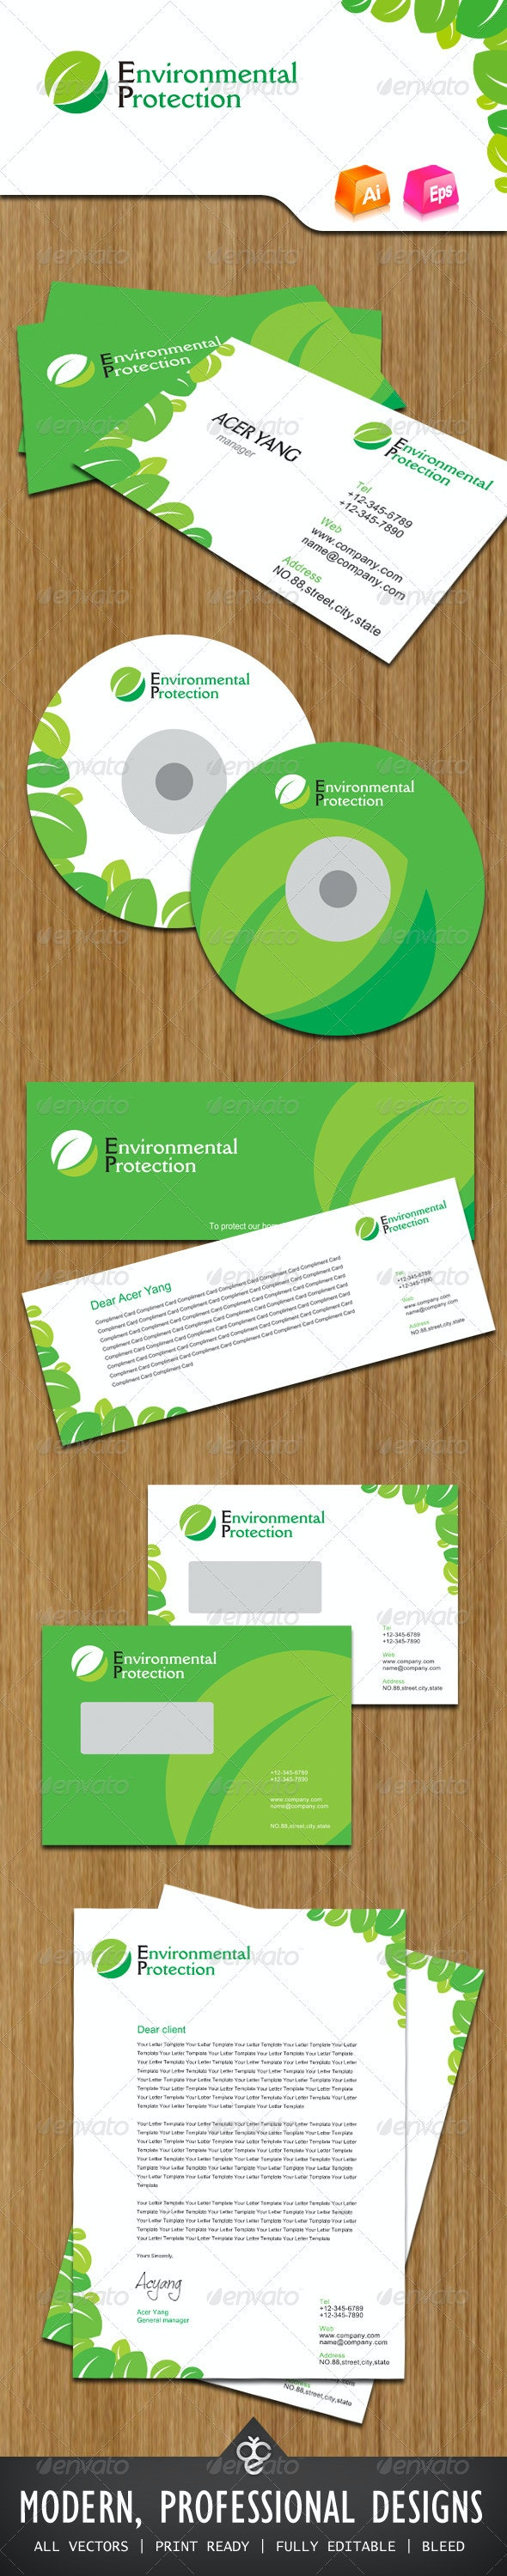 Environmenta Protection Corporate Identity - Stationery Print Templates